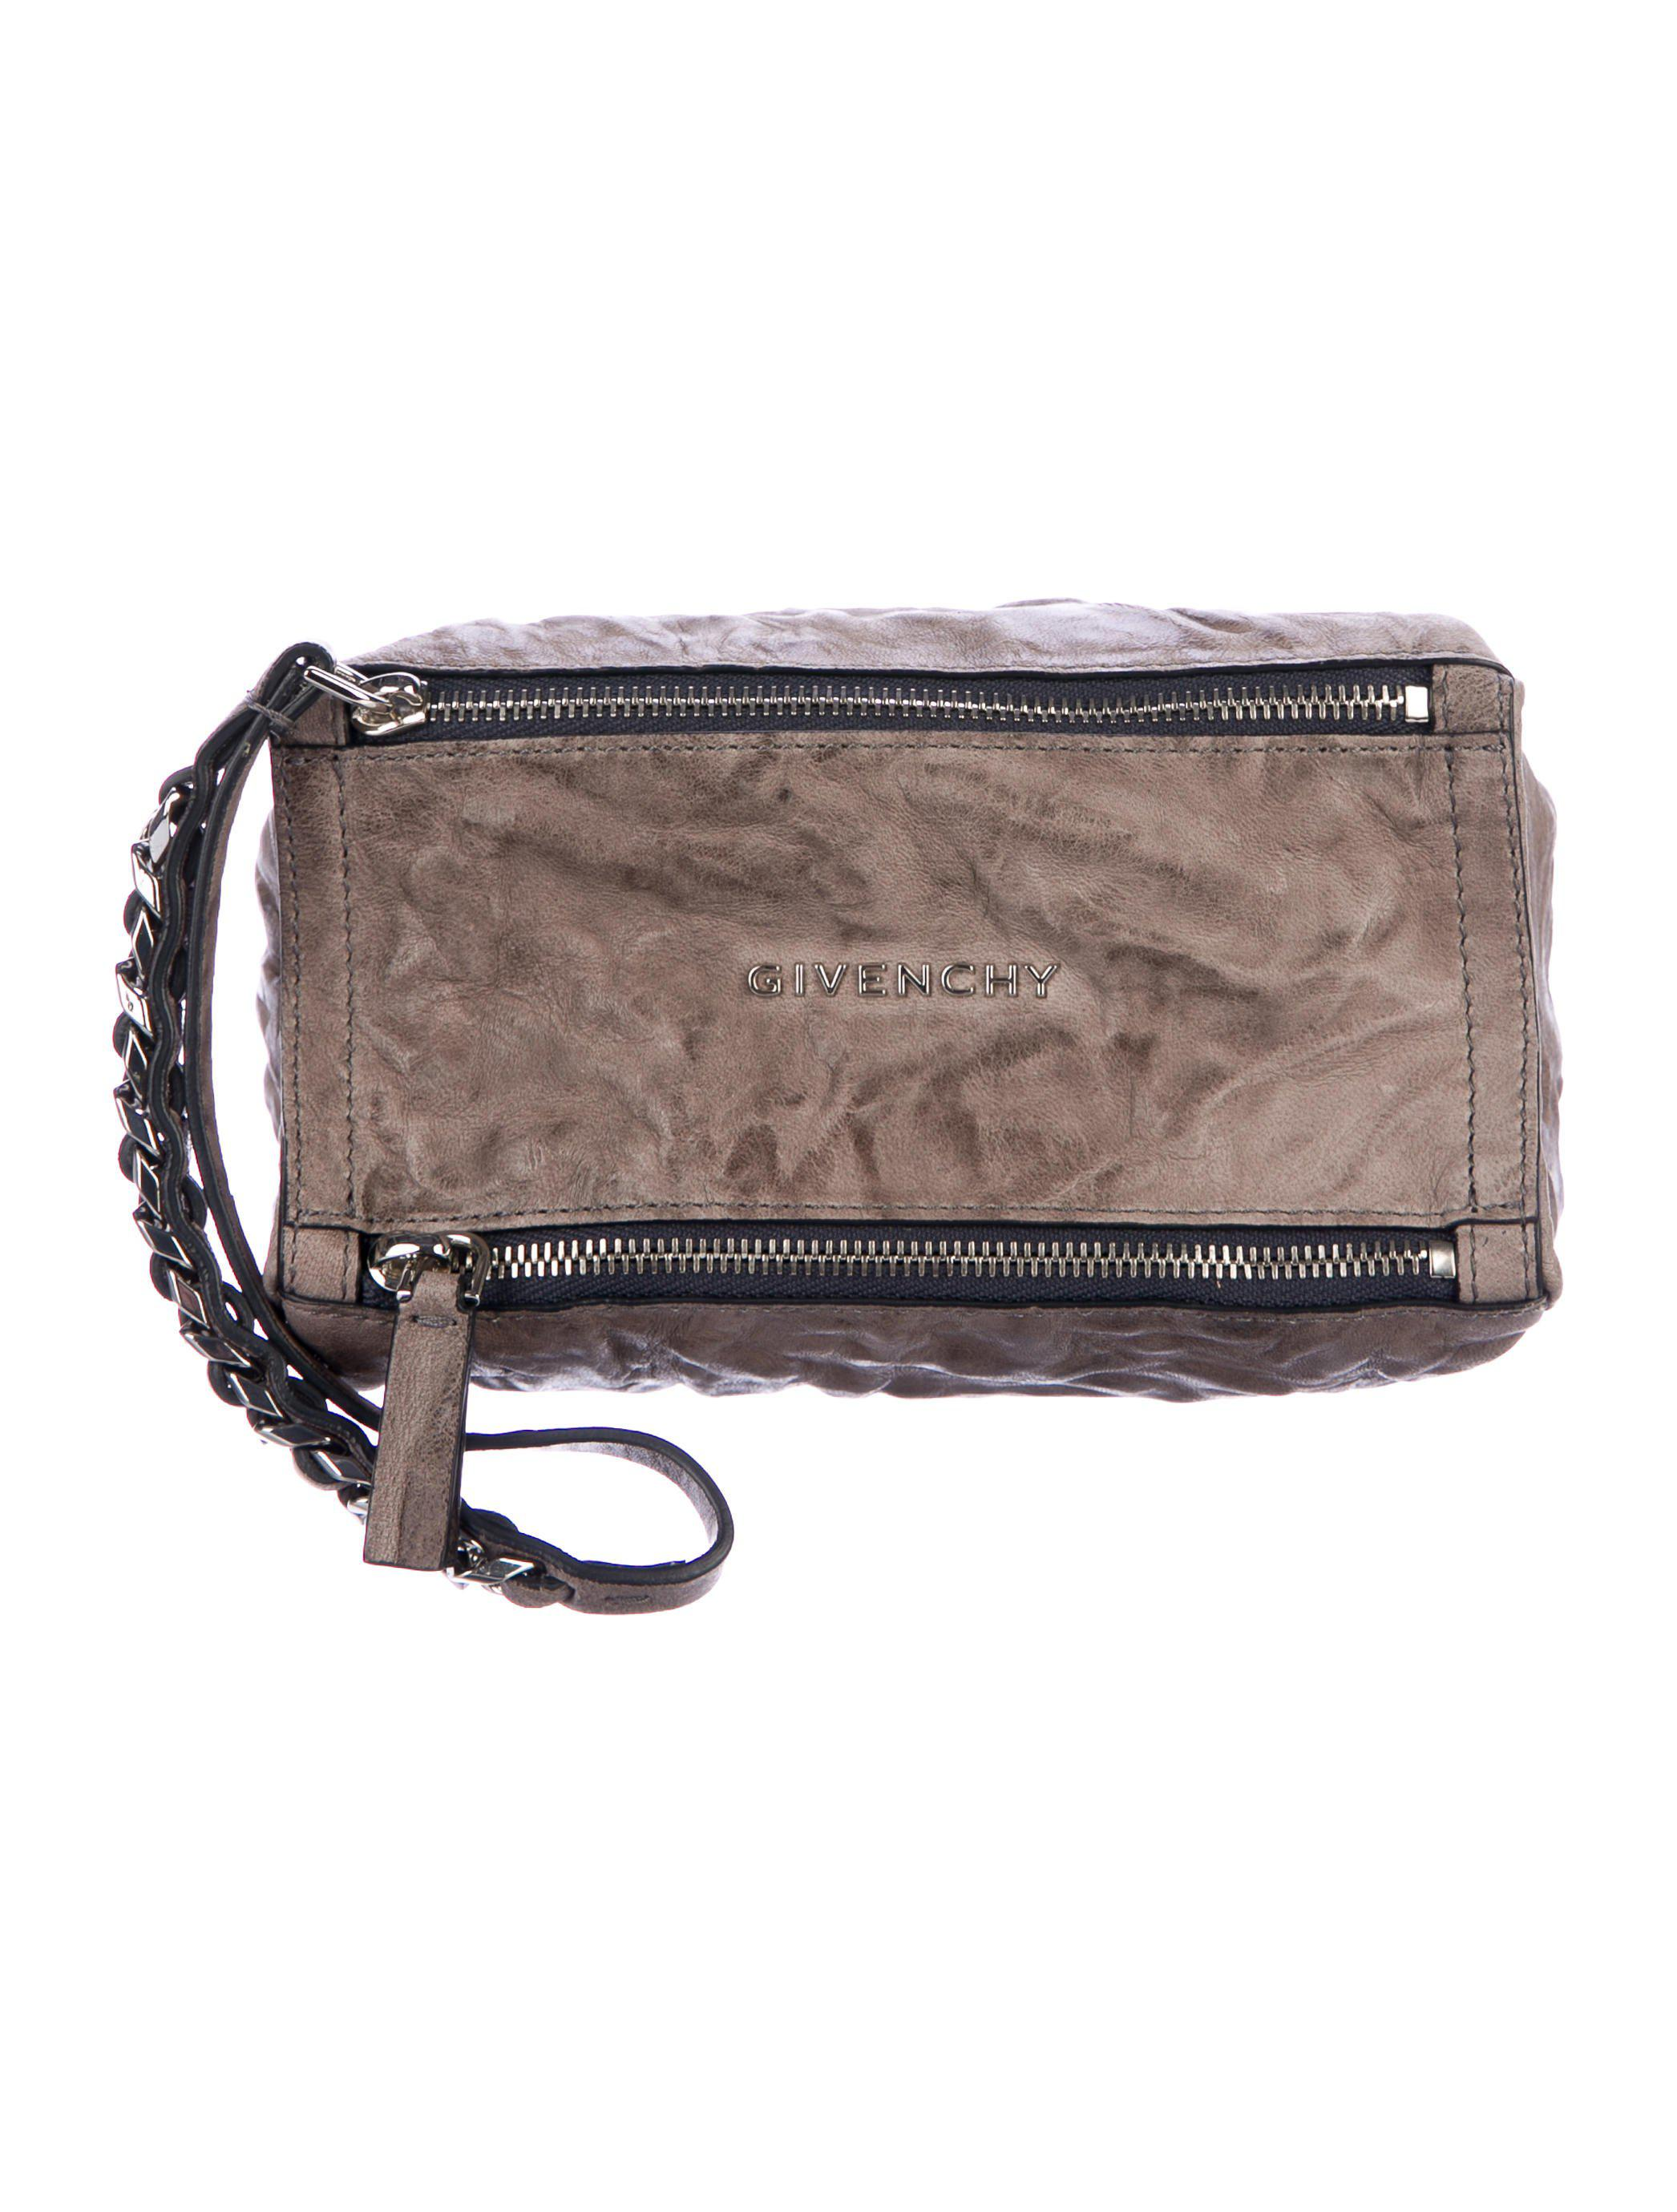 8036caefb66c Lyst - Givenchy Leather Pandora Pouch Silver in Metallic